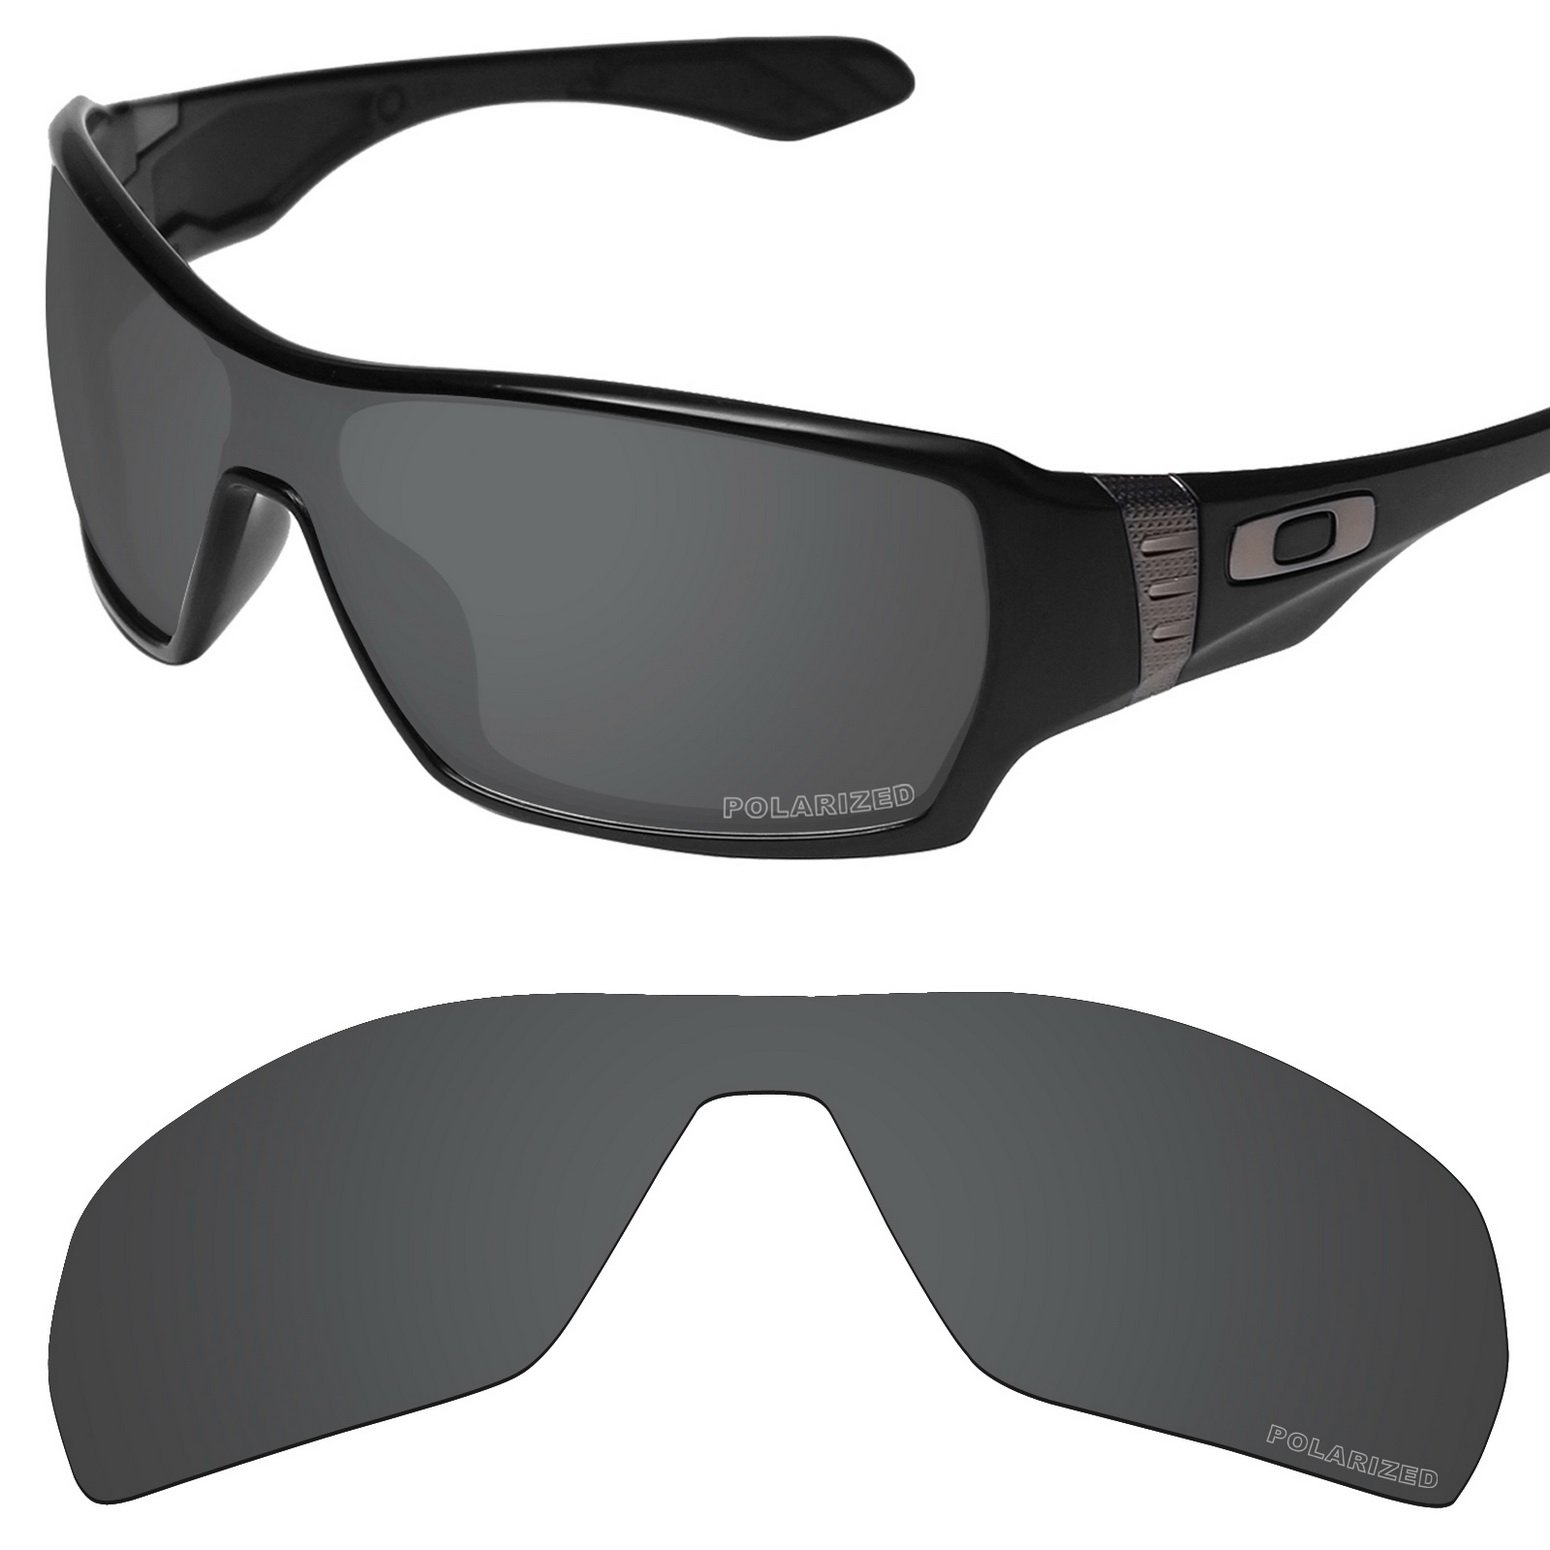 Tintart Performance Replacement Lenses for Oakley Offshoot Sunglass Polarized Etched-Carbon Black